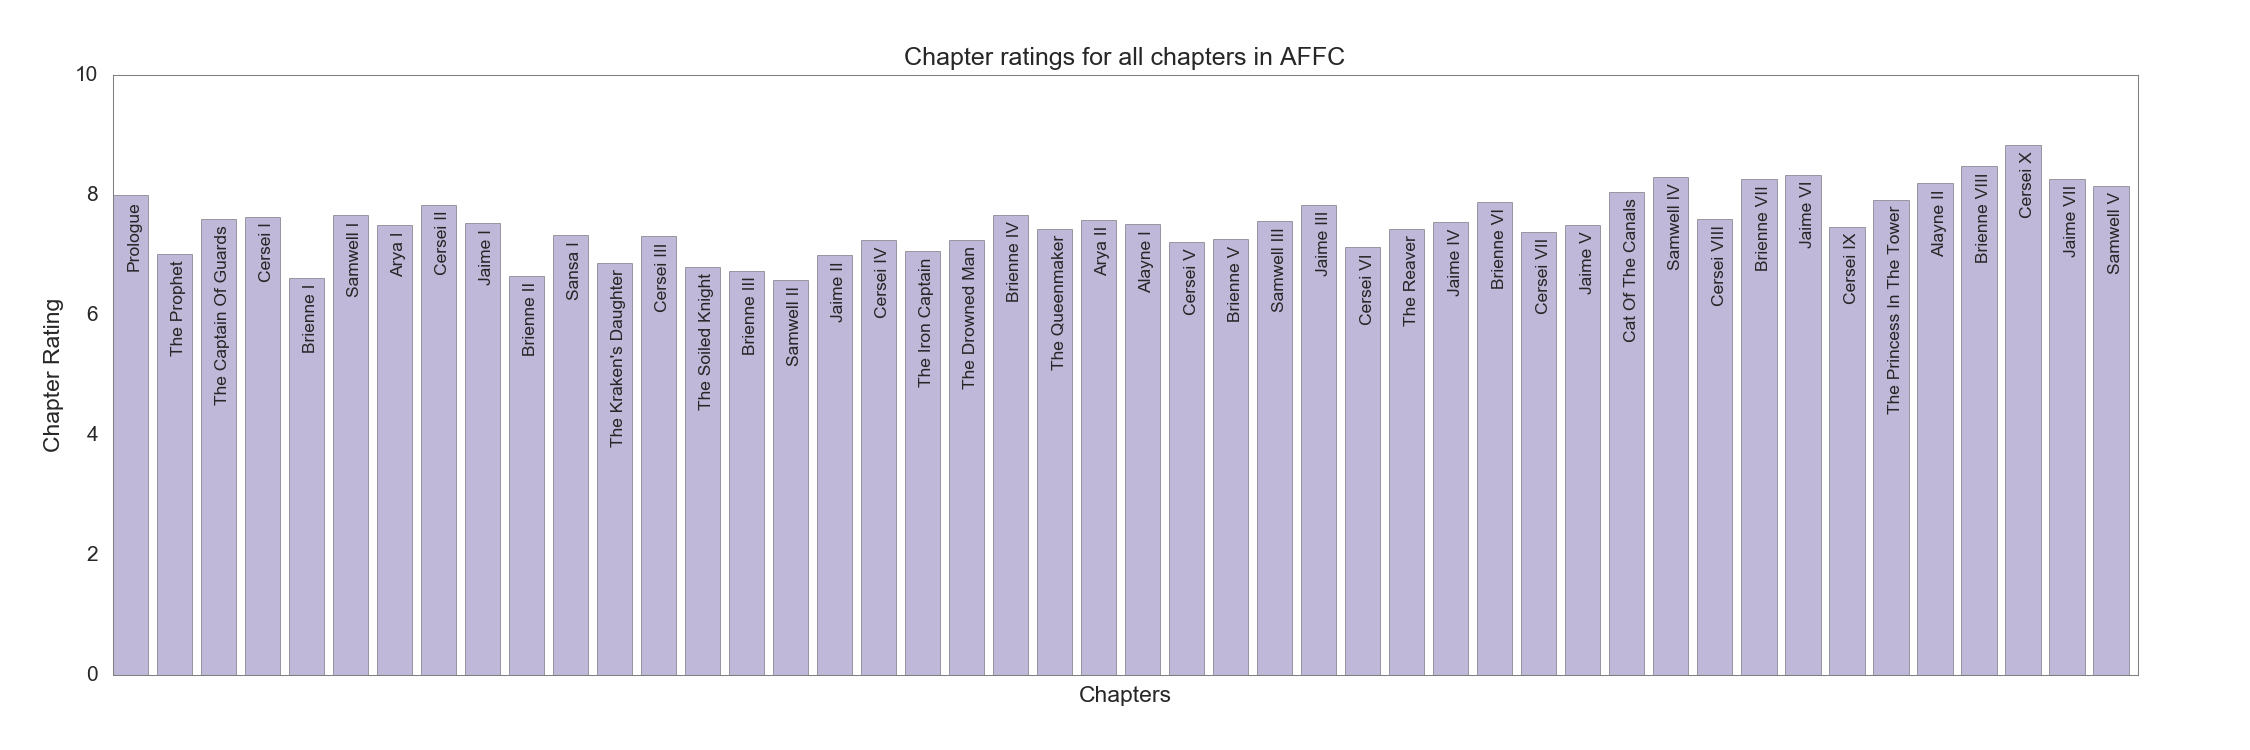 Chapter ratings in AFFC